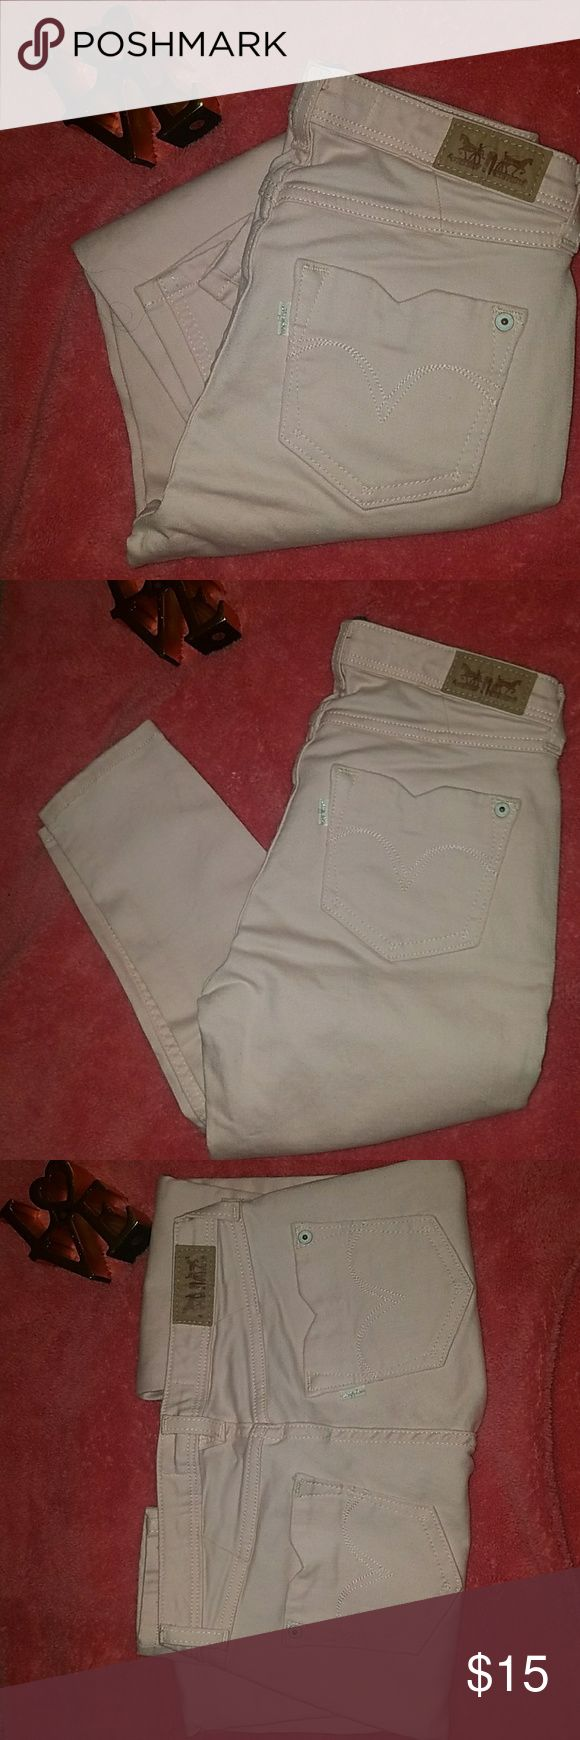 """Levi's 535  Skinny jean - Cropped Leggins Stretch denim  Mid rise  Super skinny leg  Button/zip fly closure; belt loops  Approx. 25"""" inseam, rolled  Cotton/elastane  Machine wash  Excellent Condition. Gently used.   Size : 24    Smoke and Pet free home  Any question please contact me   Thank you Levi's Jeans Ankle & Cropped"""